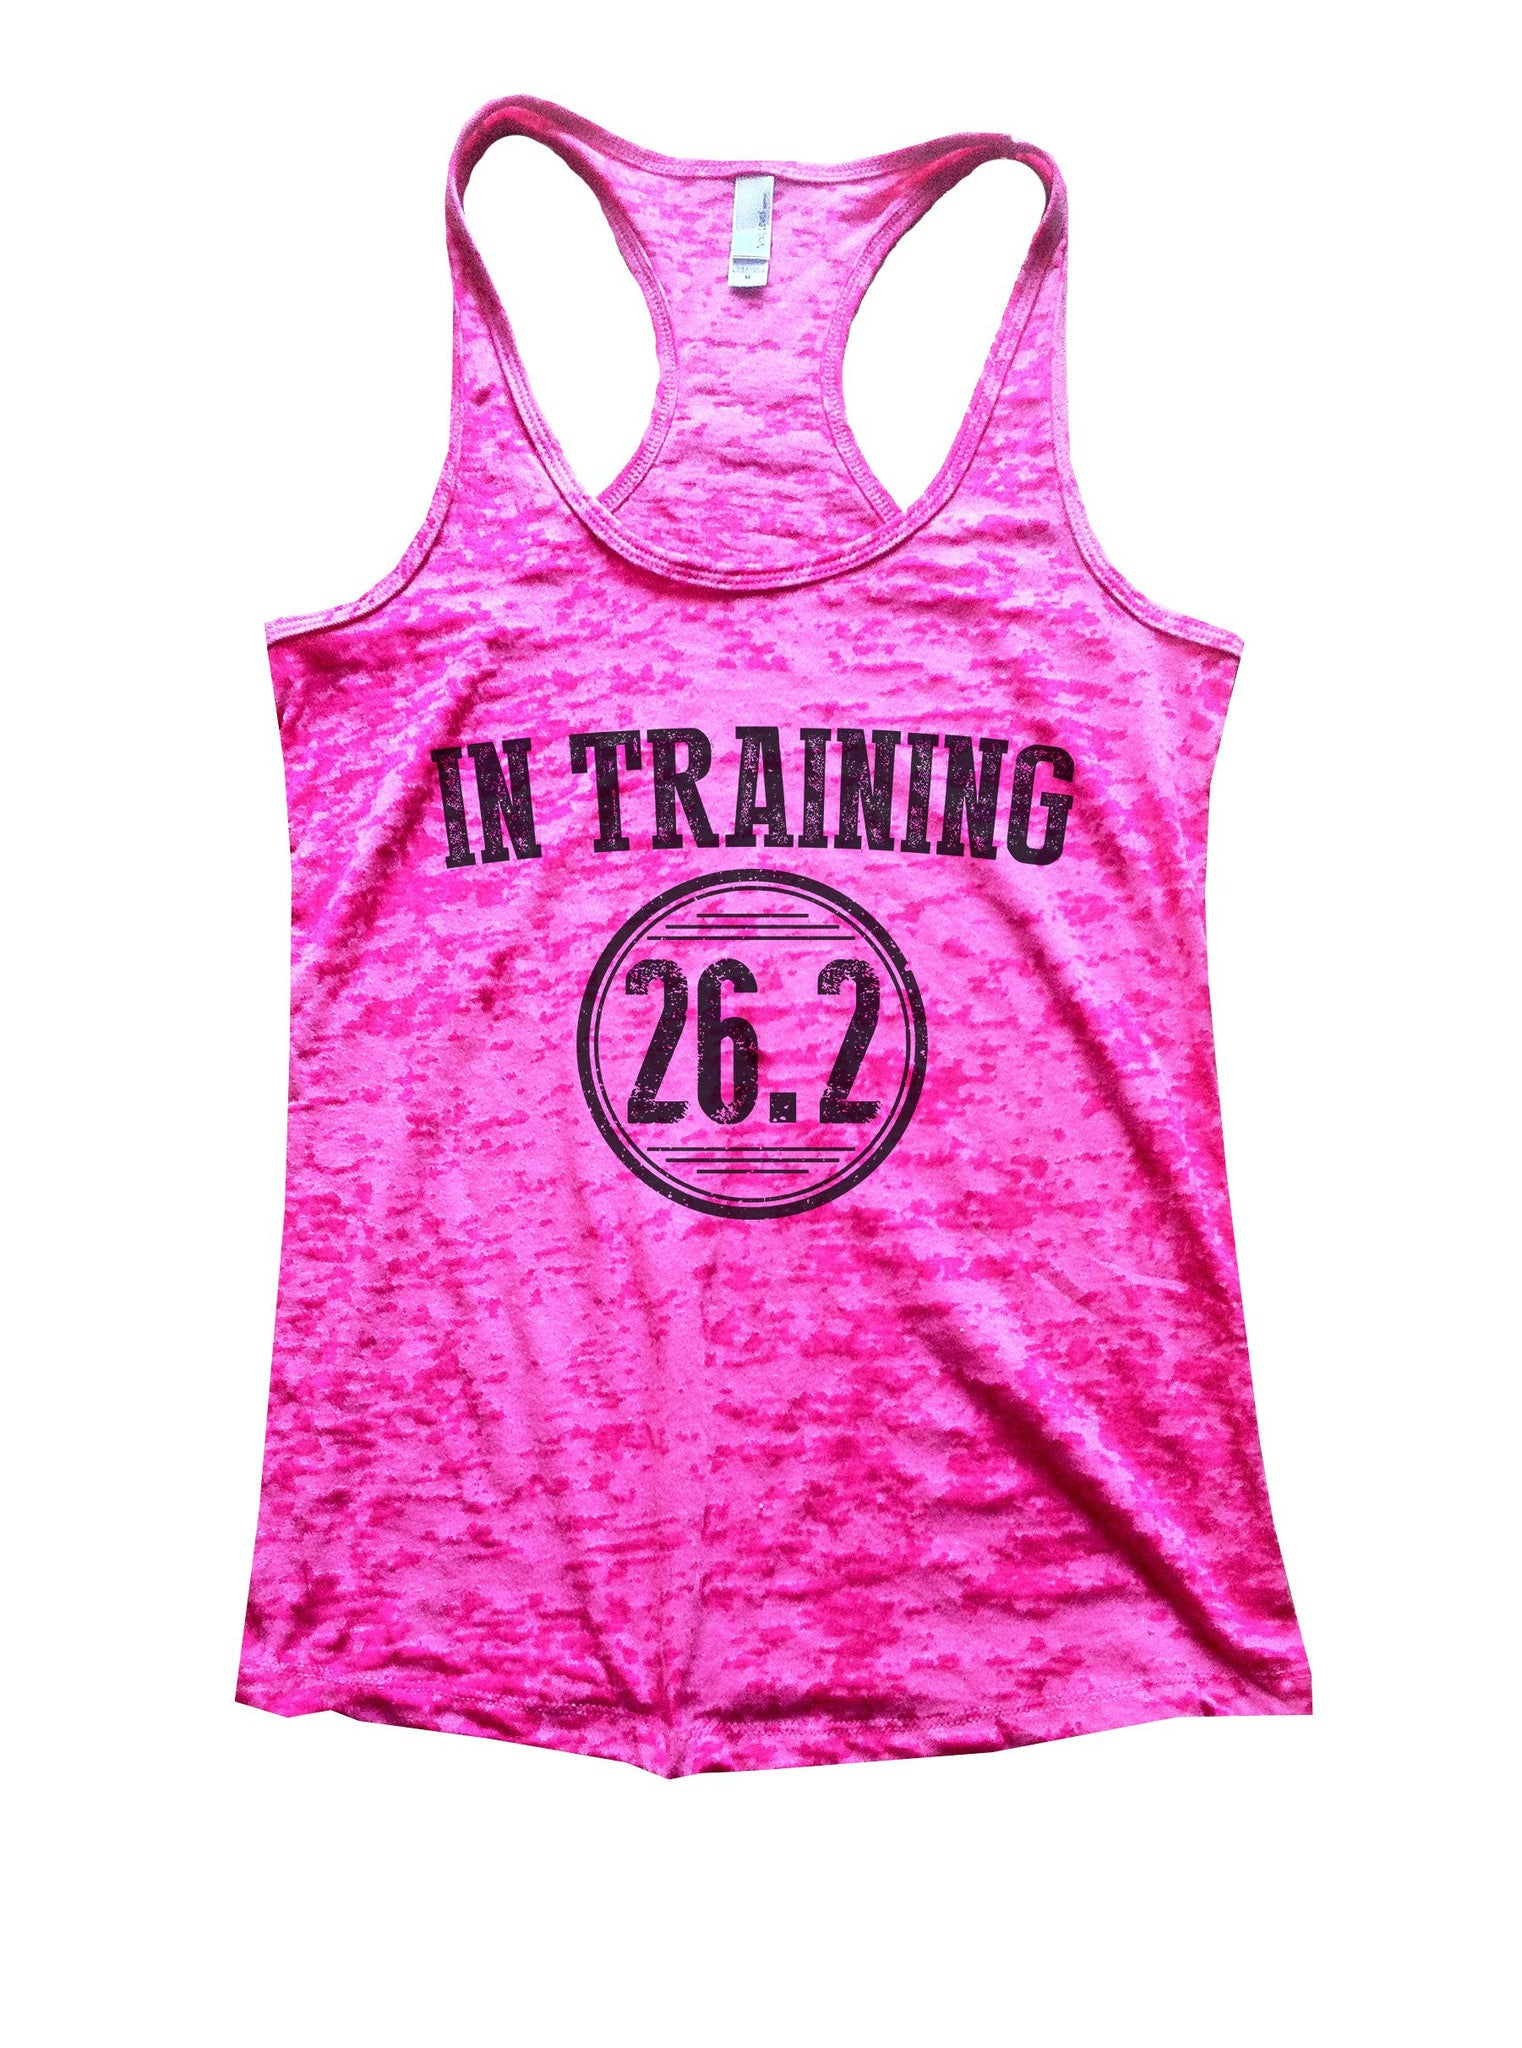 In Training 26.2 Burnout Tank Top By BurnoutTankTops.com - 1037 - Funny Shirts Tank Tops Burnouts and Triblends  - 5